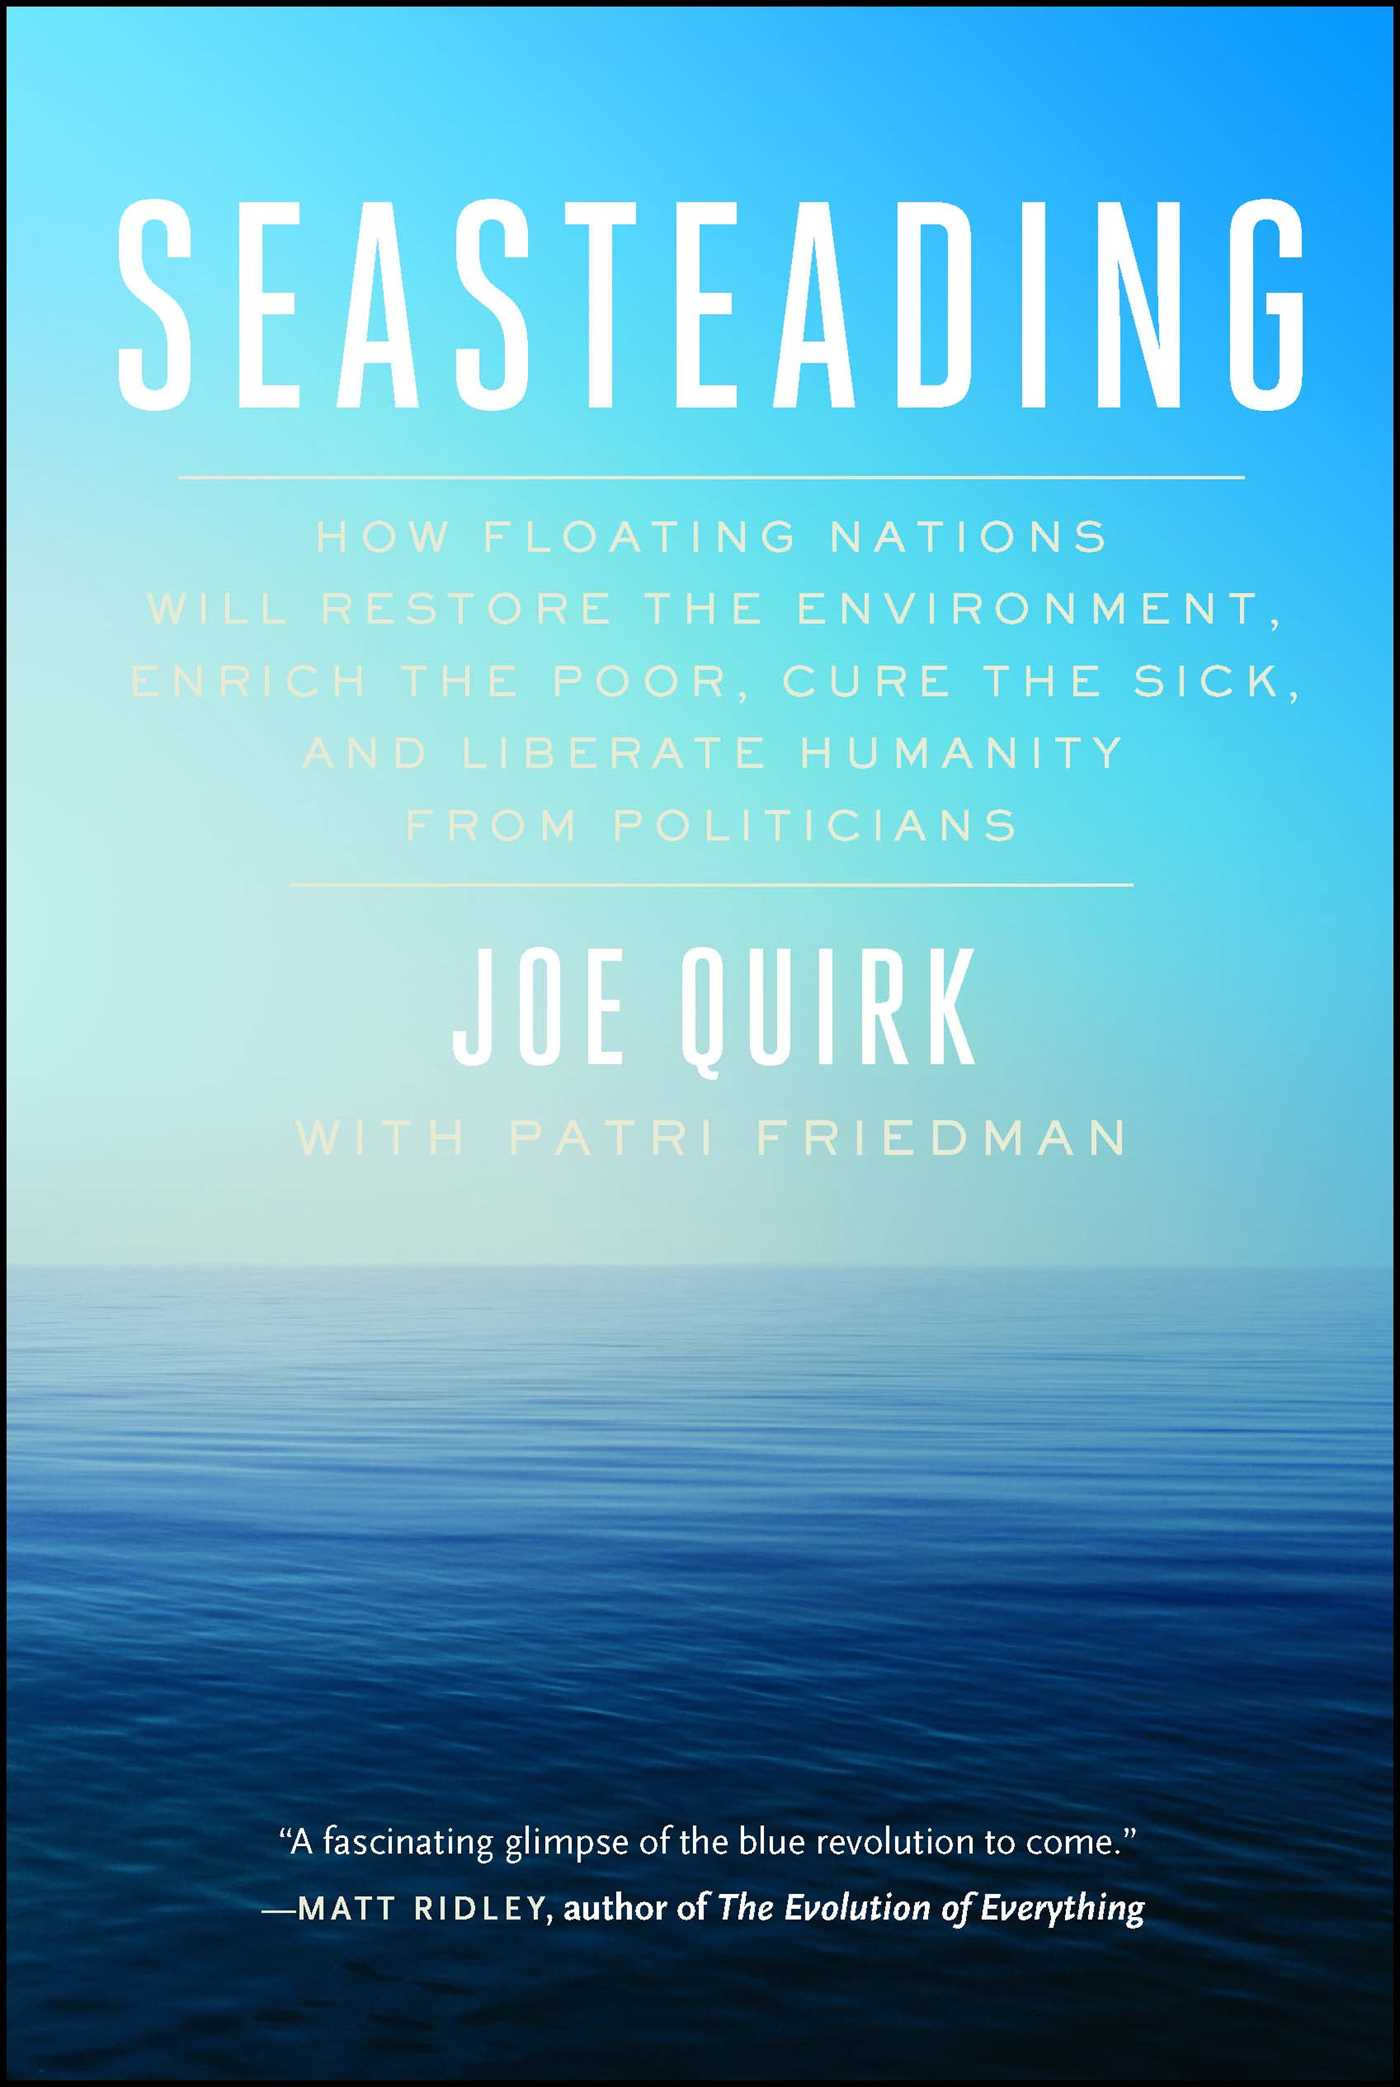 SEASTEADING: HOW FLOATING NATIONS WILL RESTORE THE ENVIRONMENT, ENRICH THE POOR, CURE THE SICK, AND